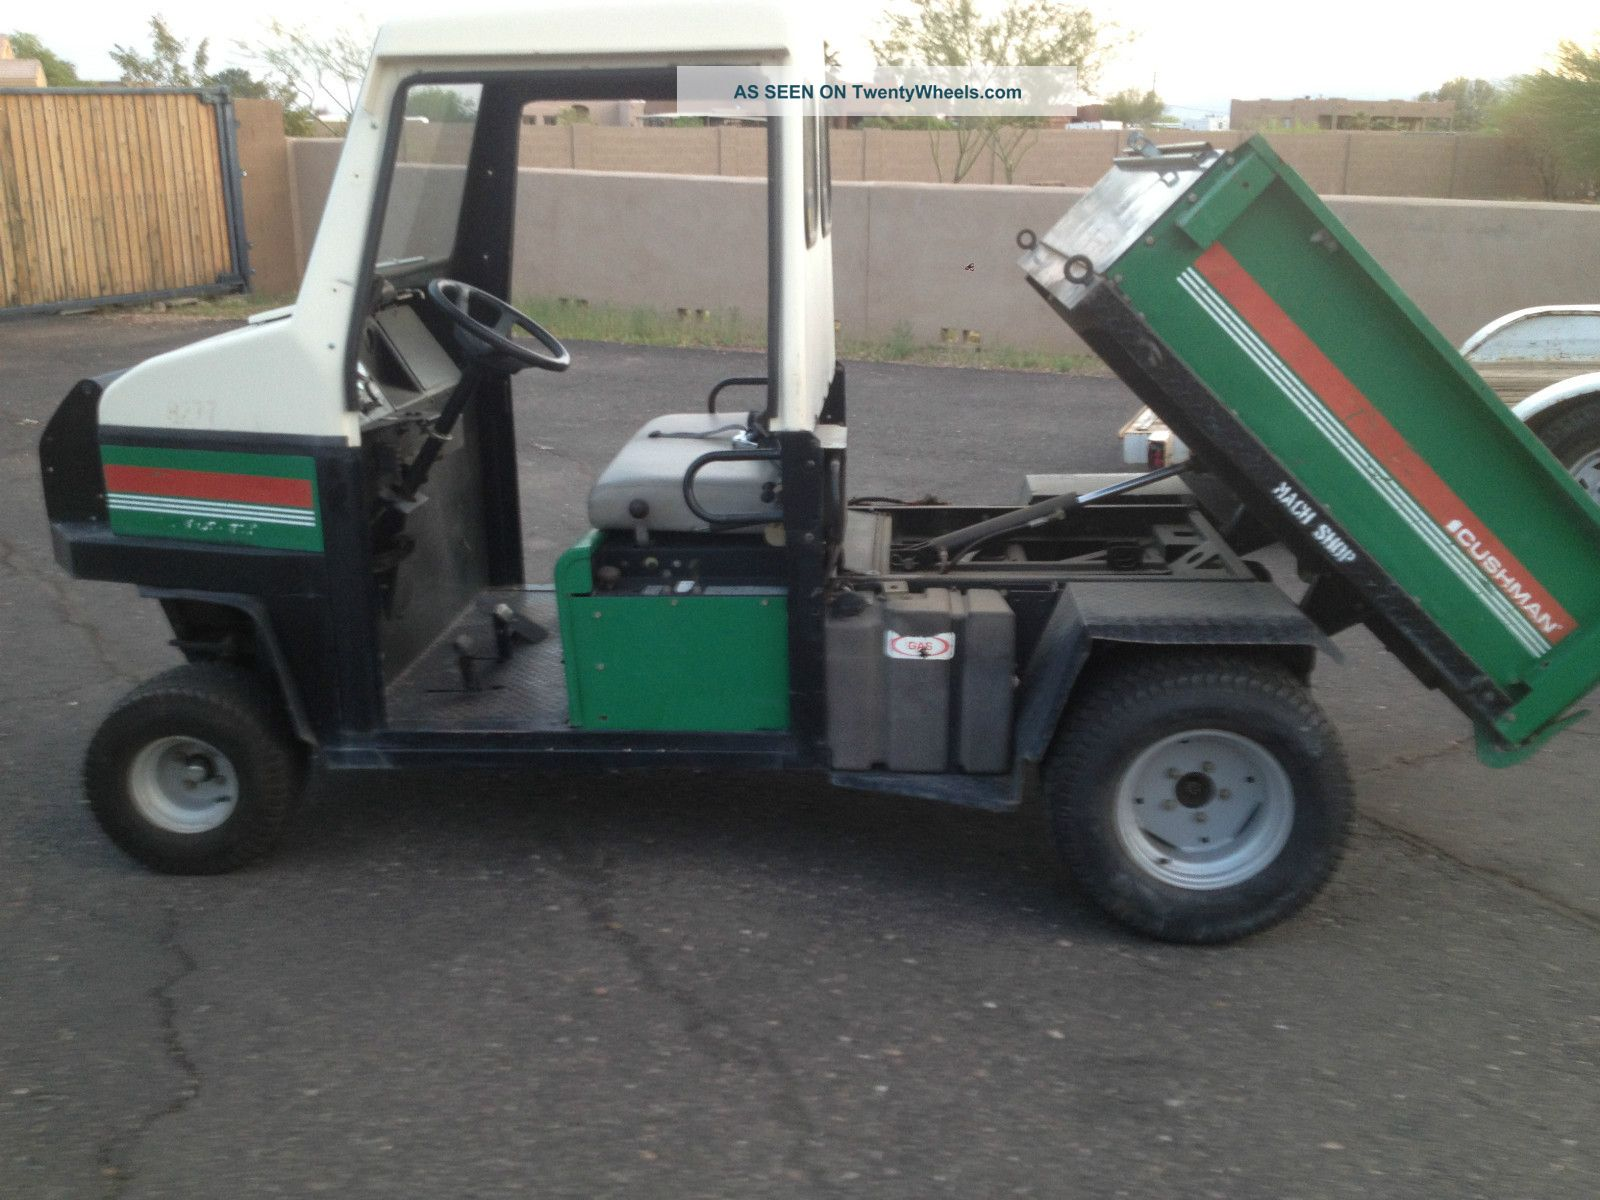 Jacobsen Cushman Turf Truckster W Dump Bed And Cab Works Great 27 Hp Dump Truck Utility Vehicles photo